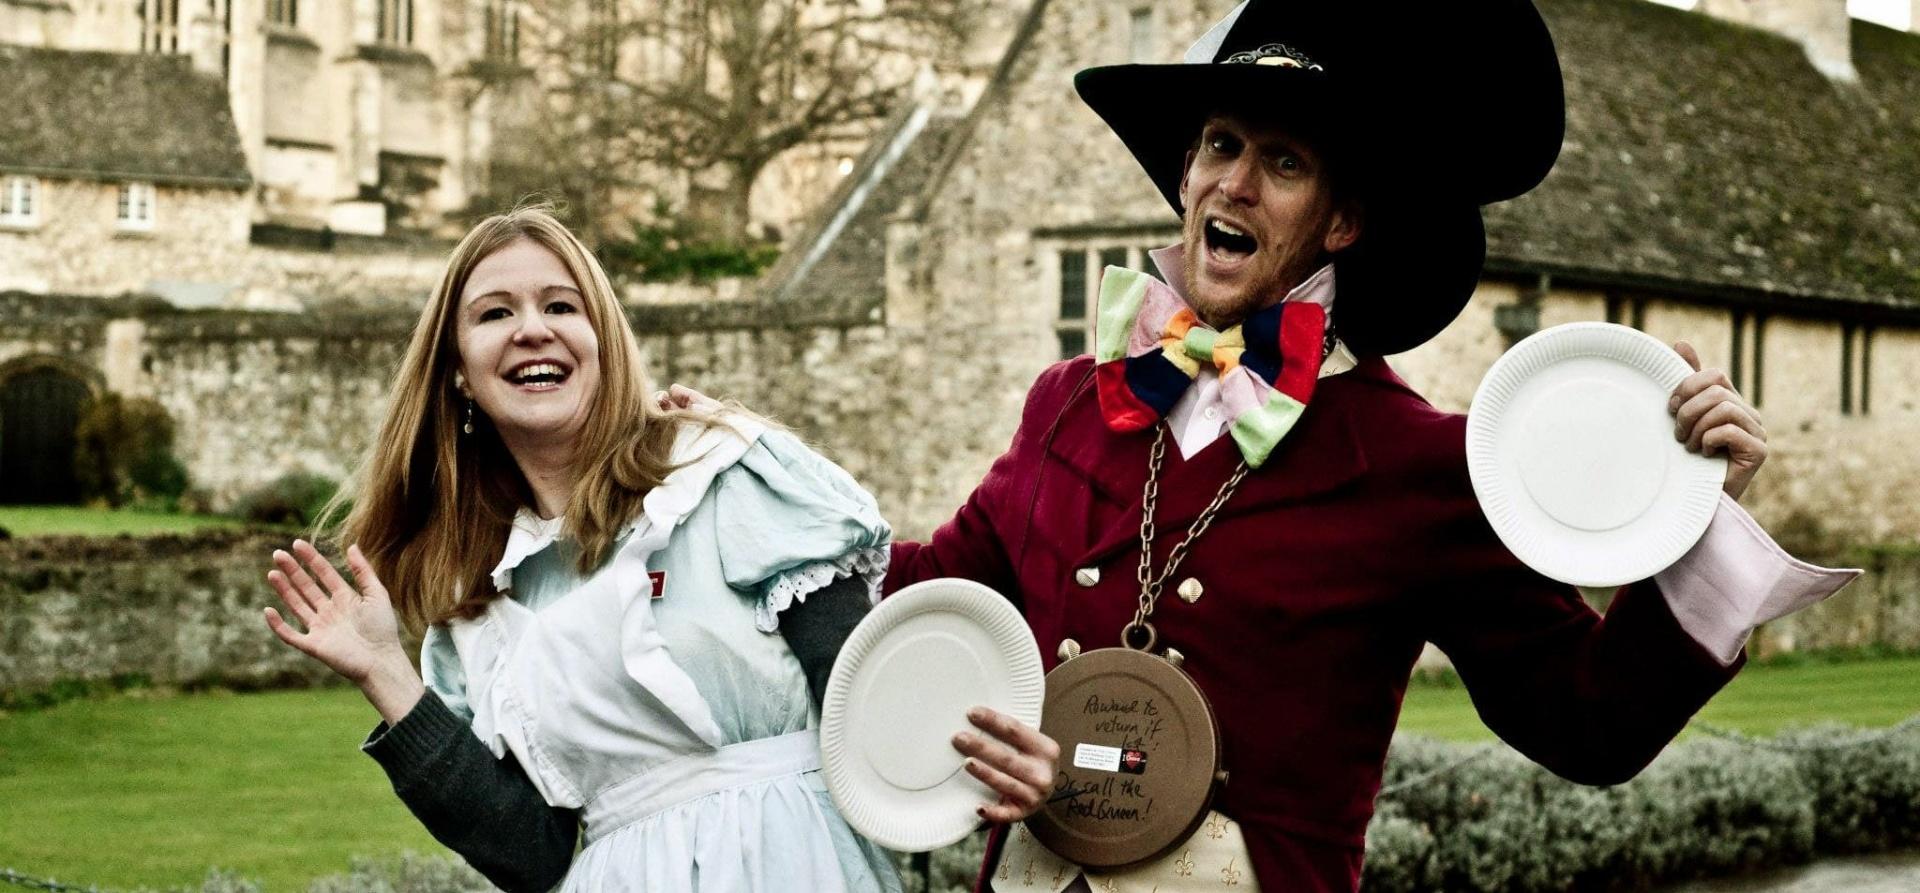 Mad Hatter Walking Tour of Oxford - For 2-1